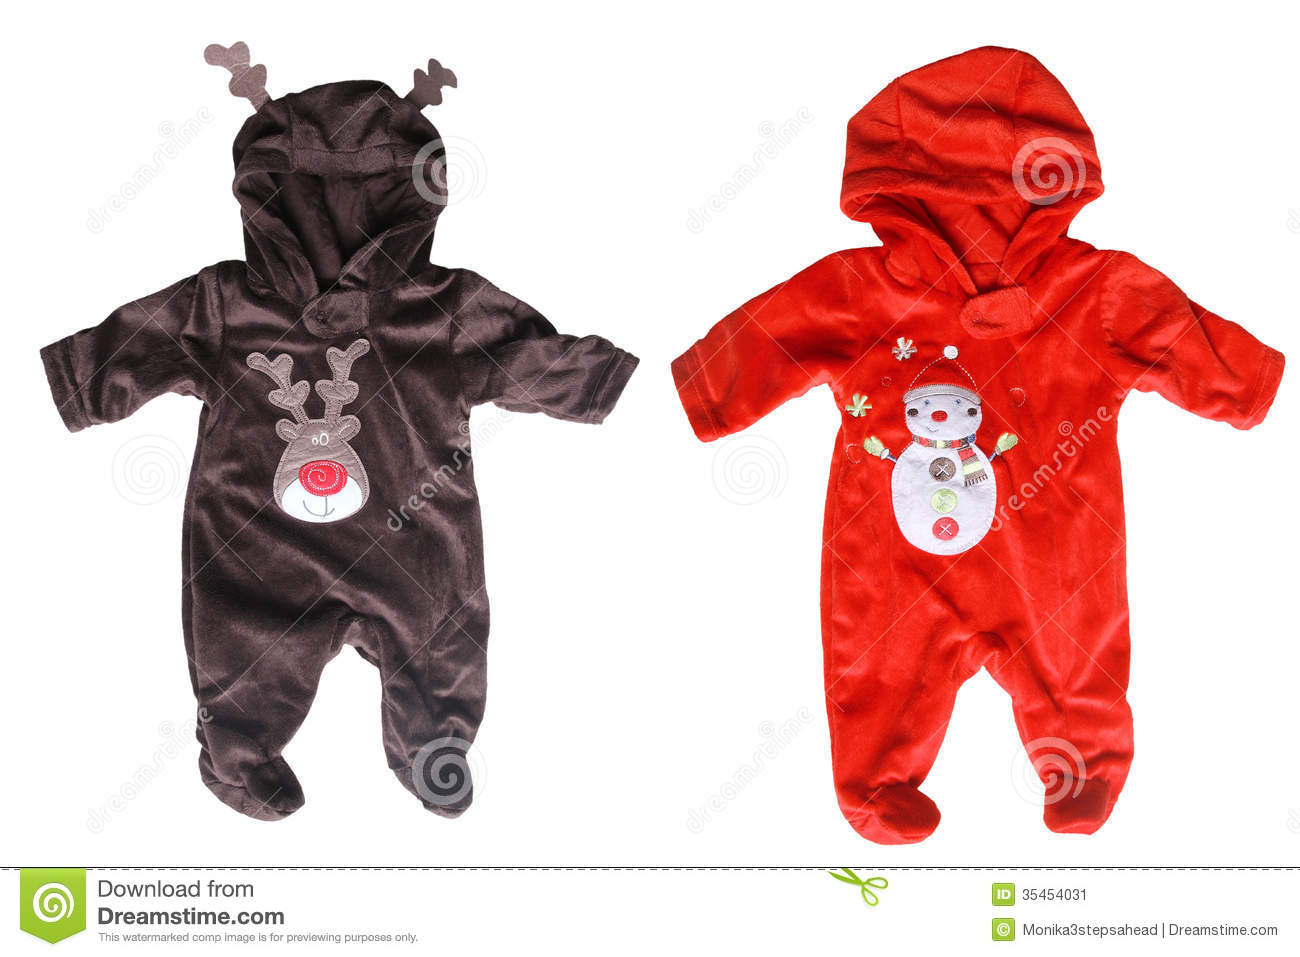 Winter babies overalls for christmas - isolated on white background.